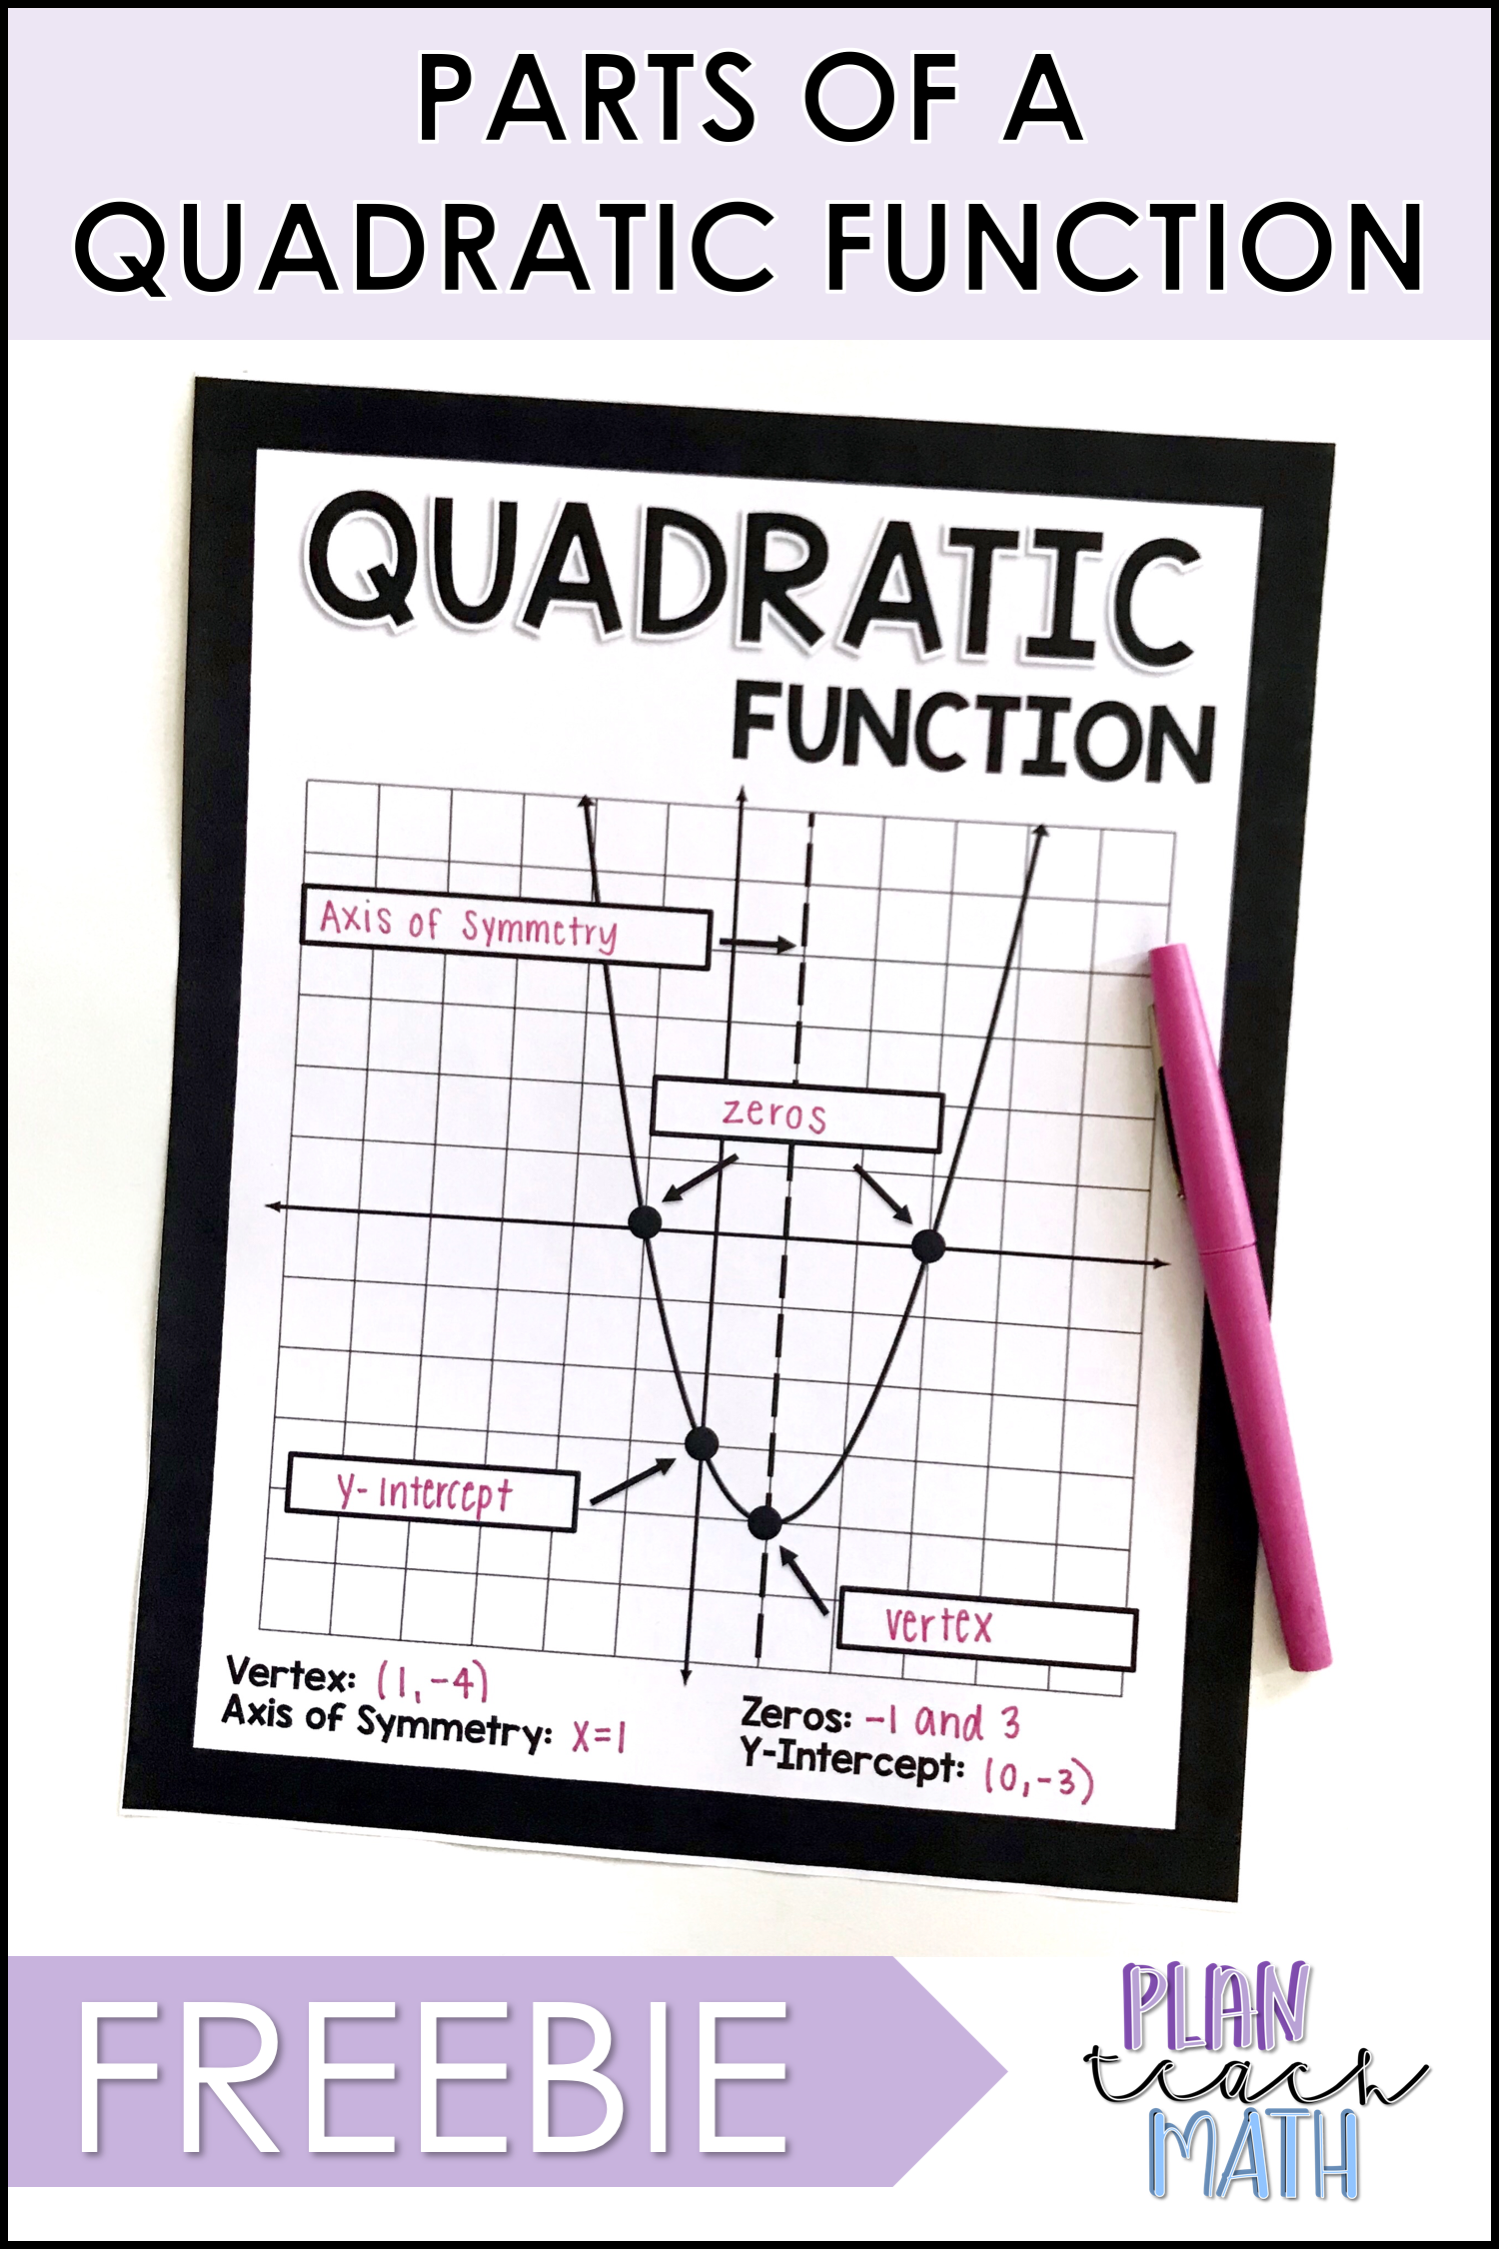 Quadratic Functions Reference Sheet